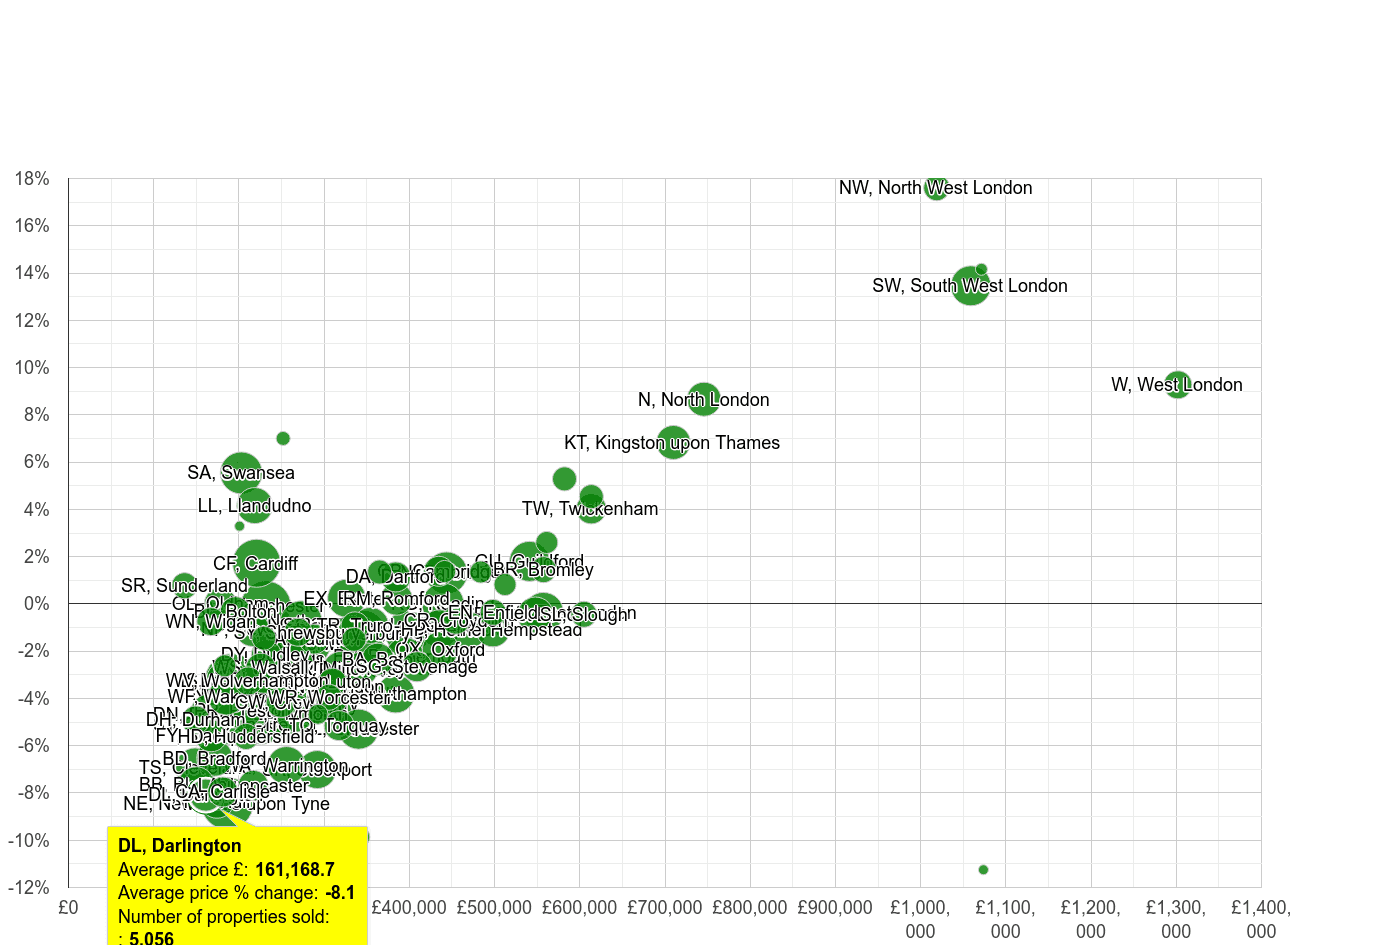 Darlington house prices compared to other areas